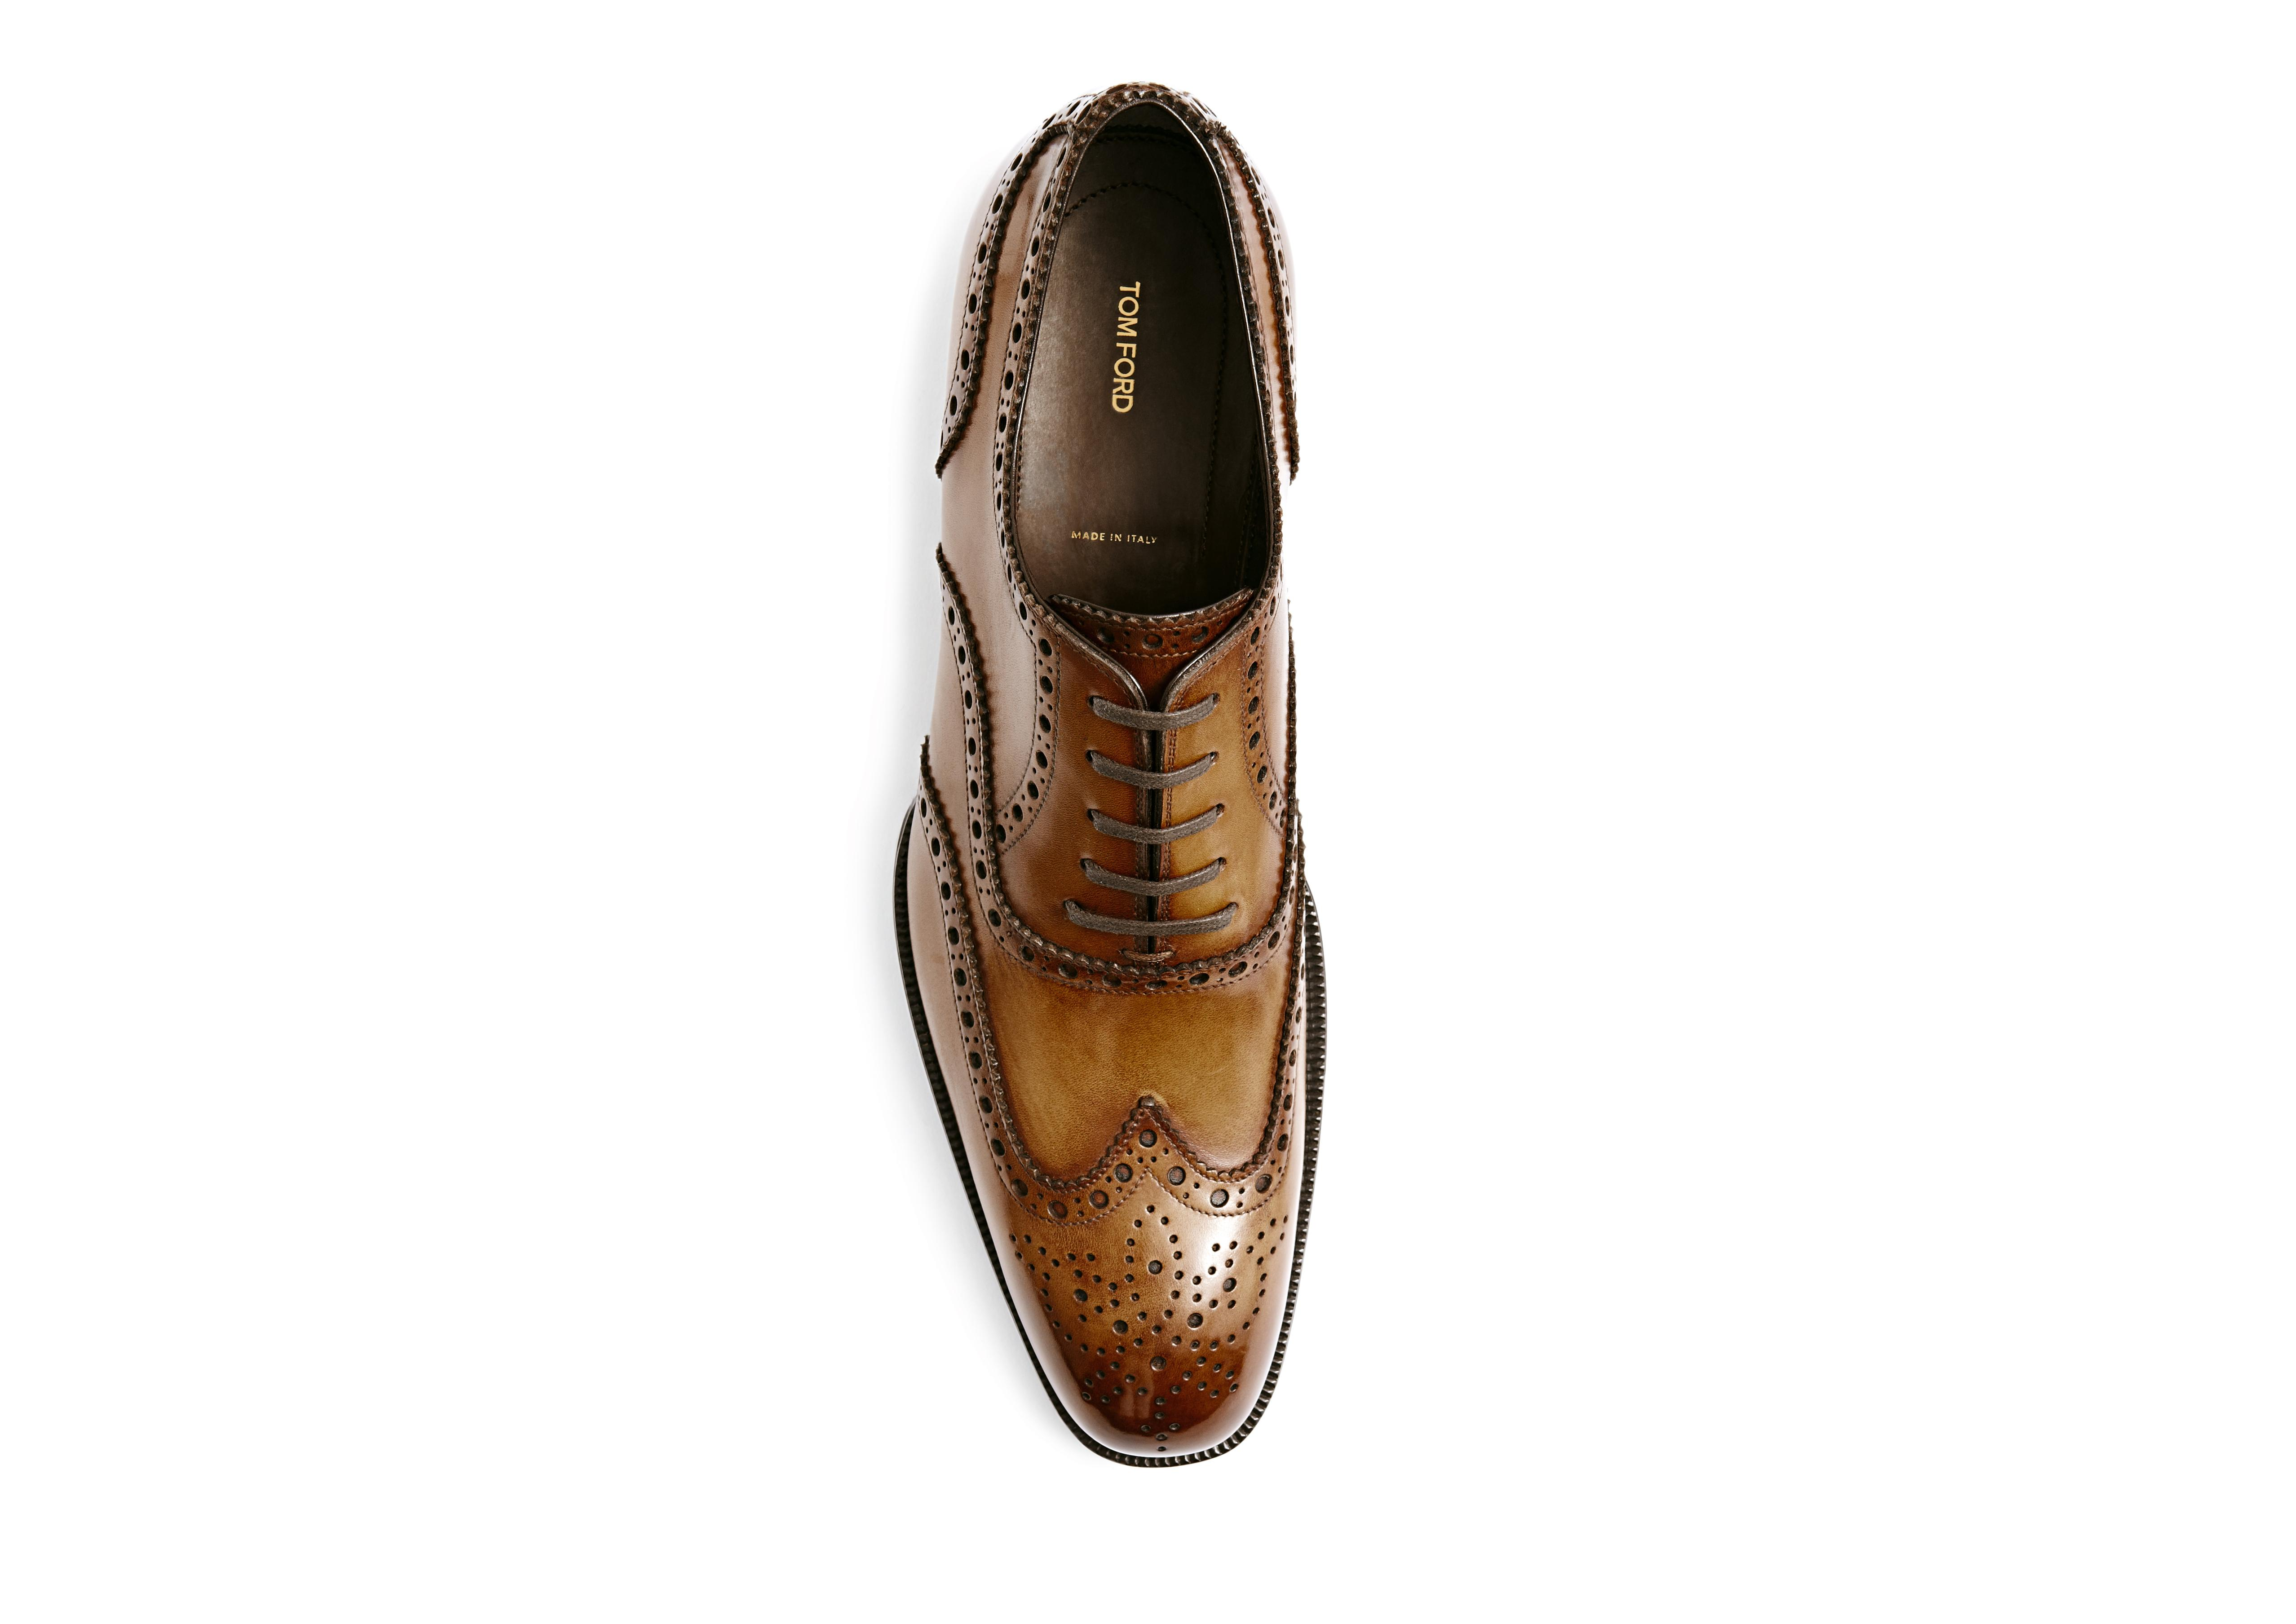 Edward Burnished Leather French Brogue Wingtip Lace-Up B thumbnail